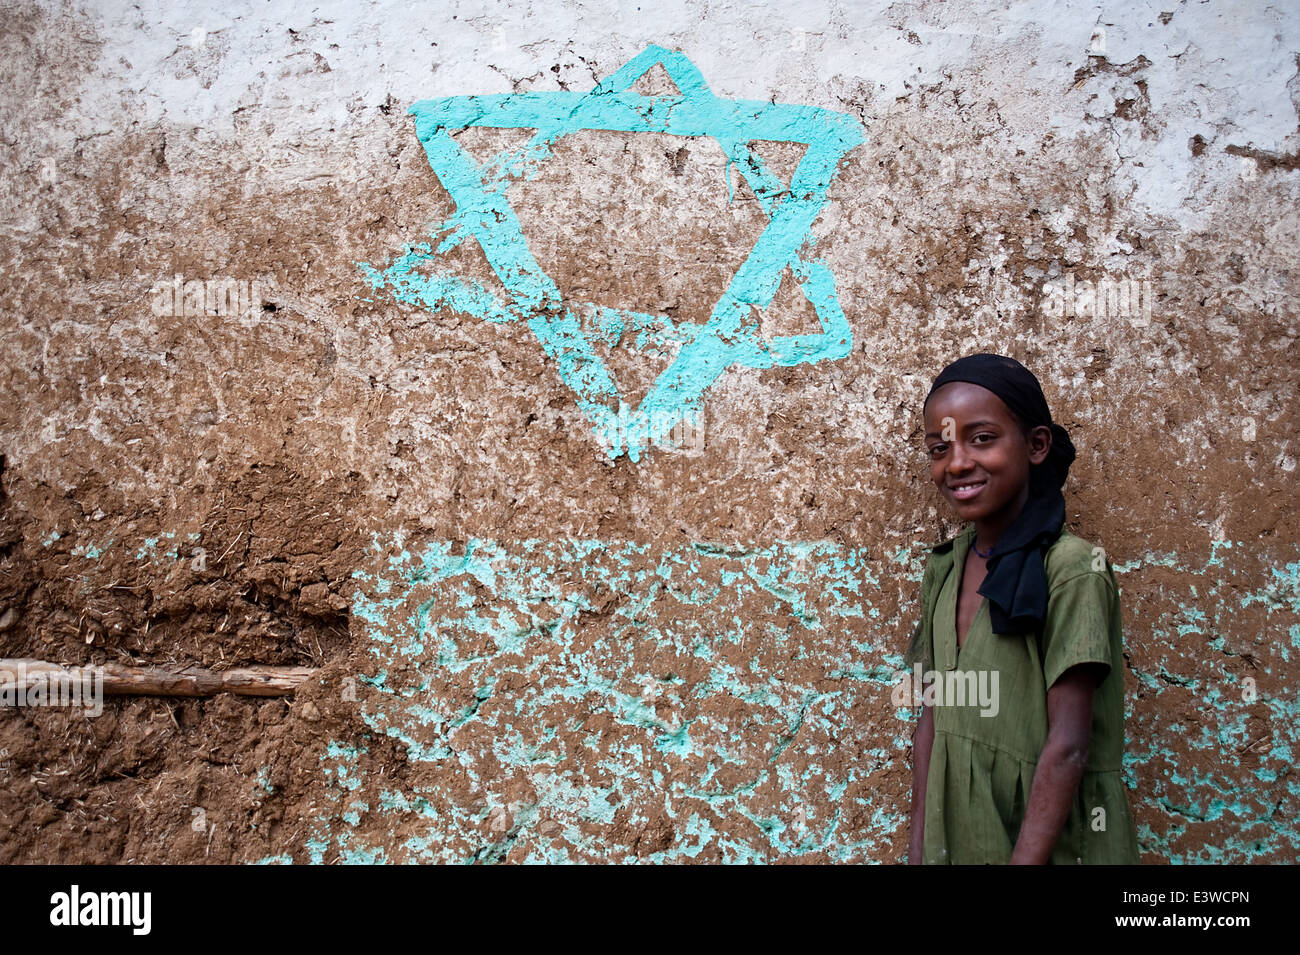 A star of David is painted on a wall in a former Falasha village ( Ethiopia) - Stock Image